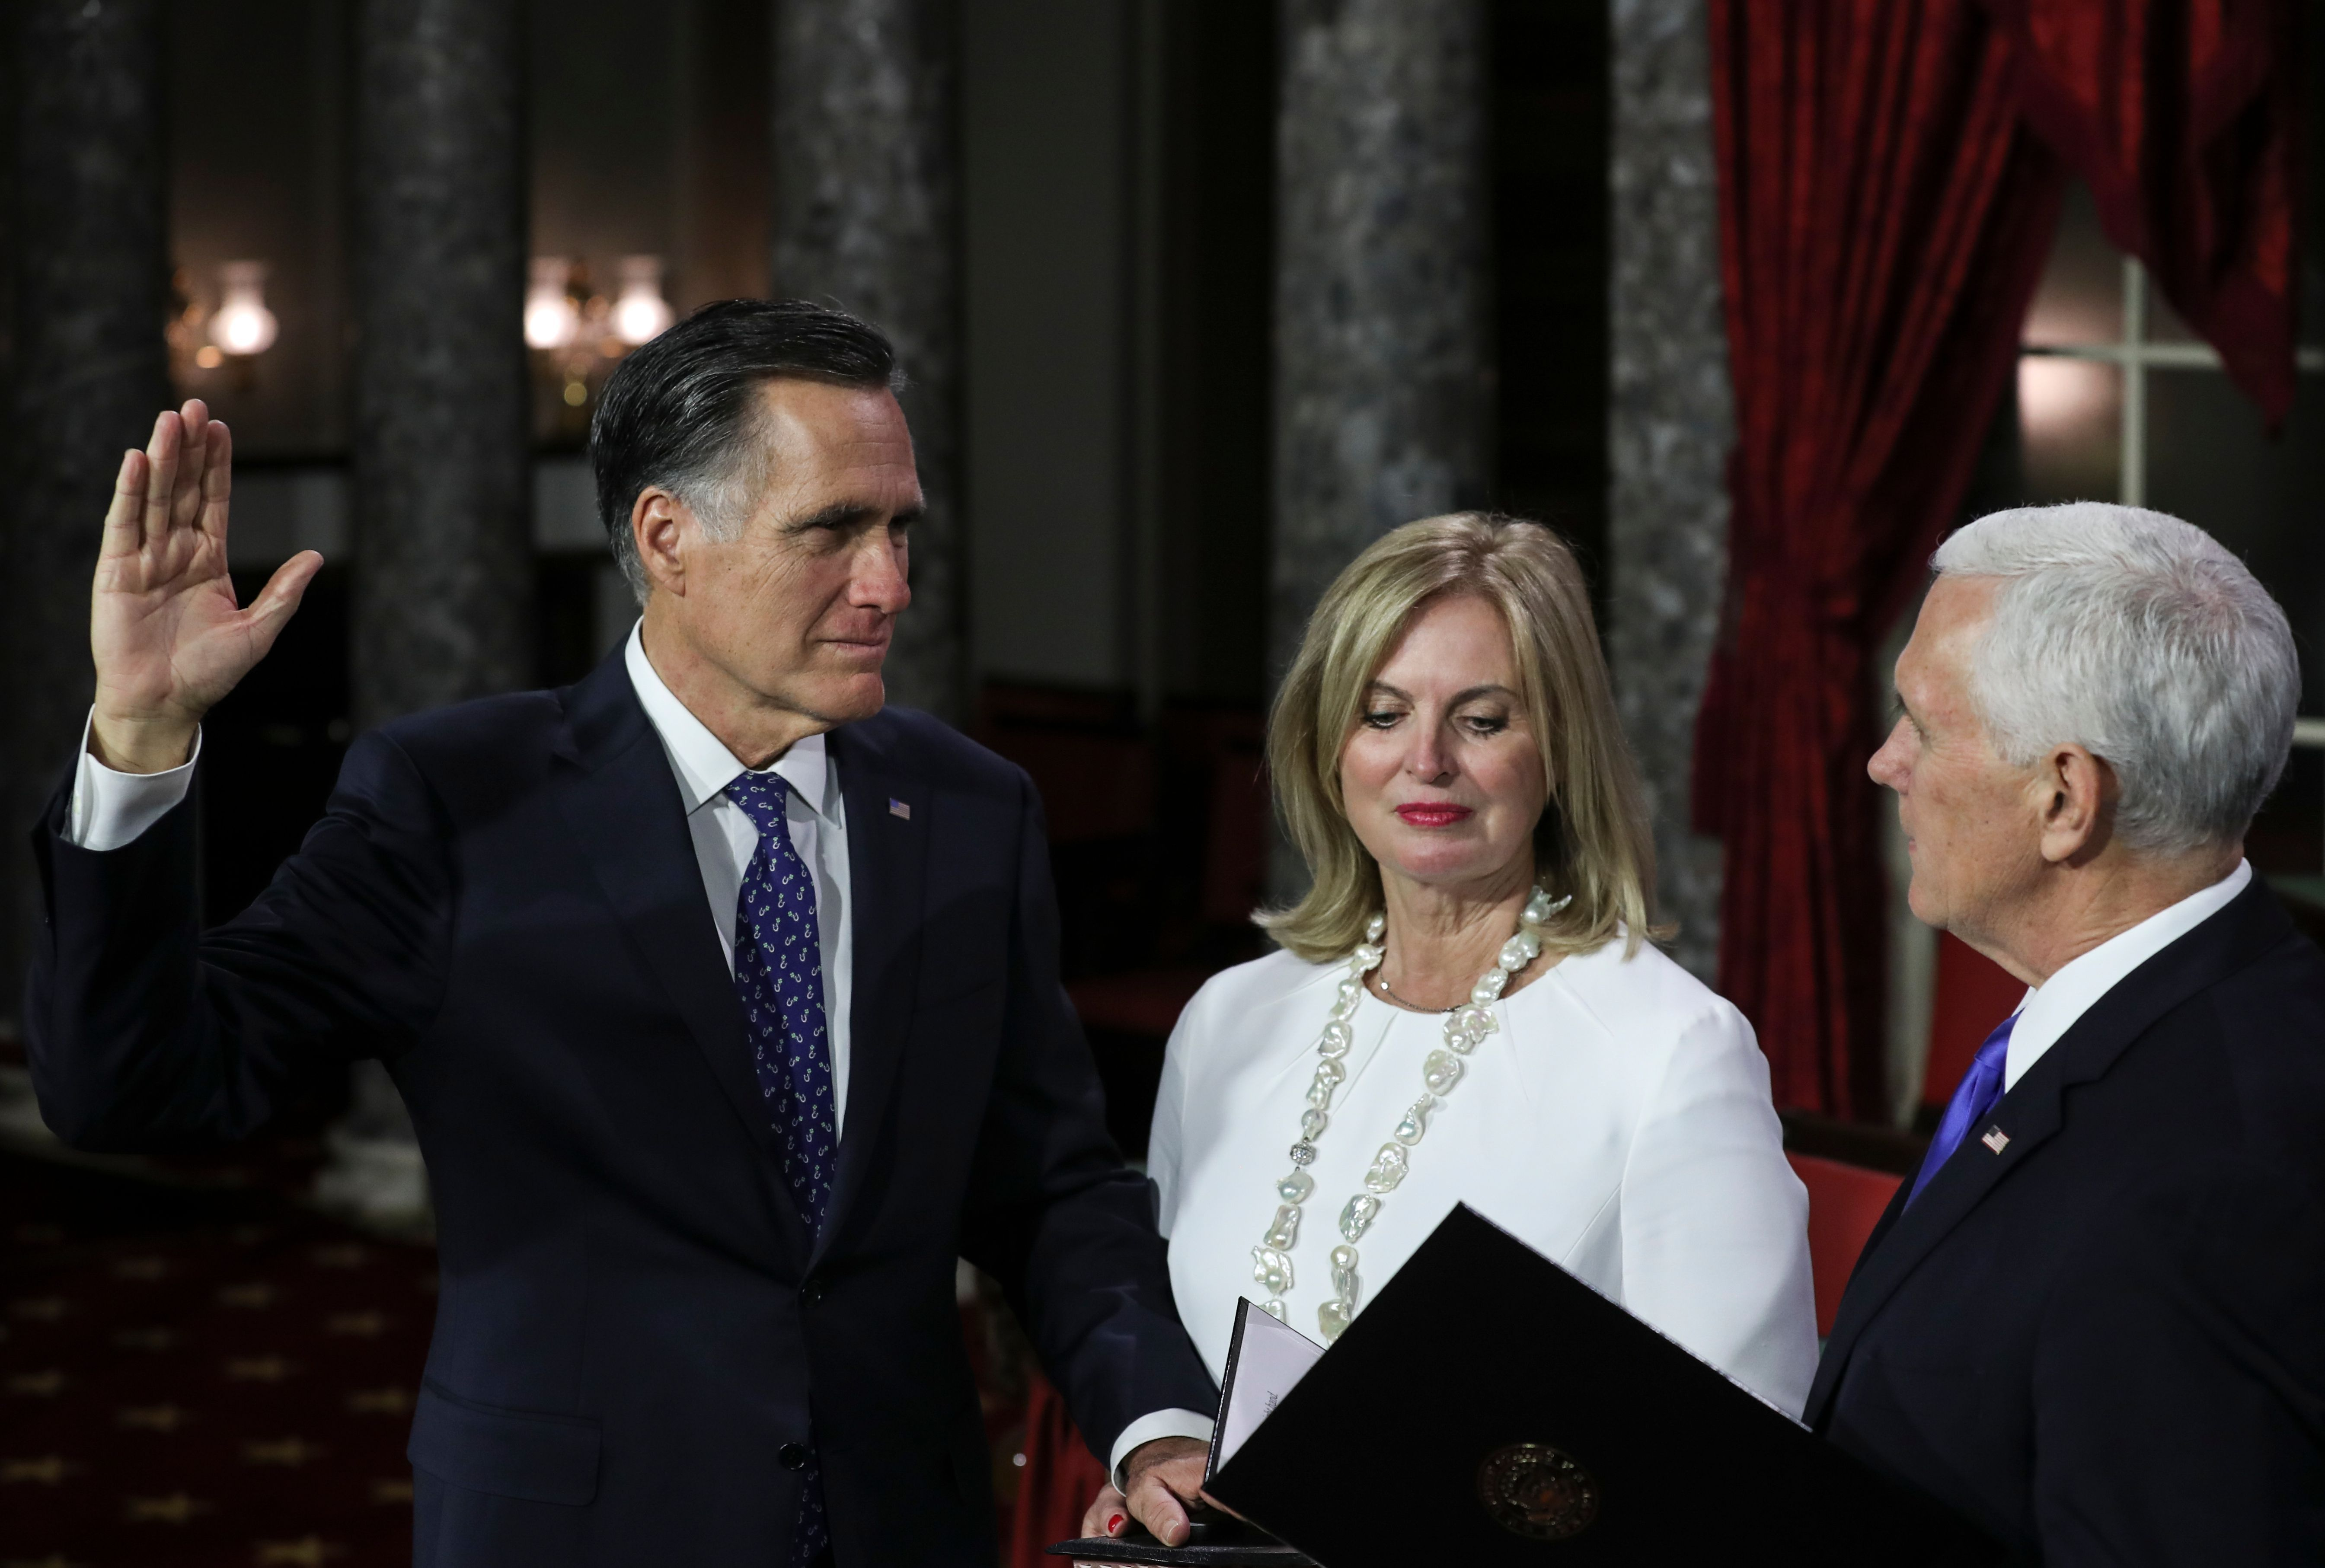 Mitt Romney being sworn in, next to his wife and Mike Pence.